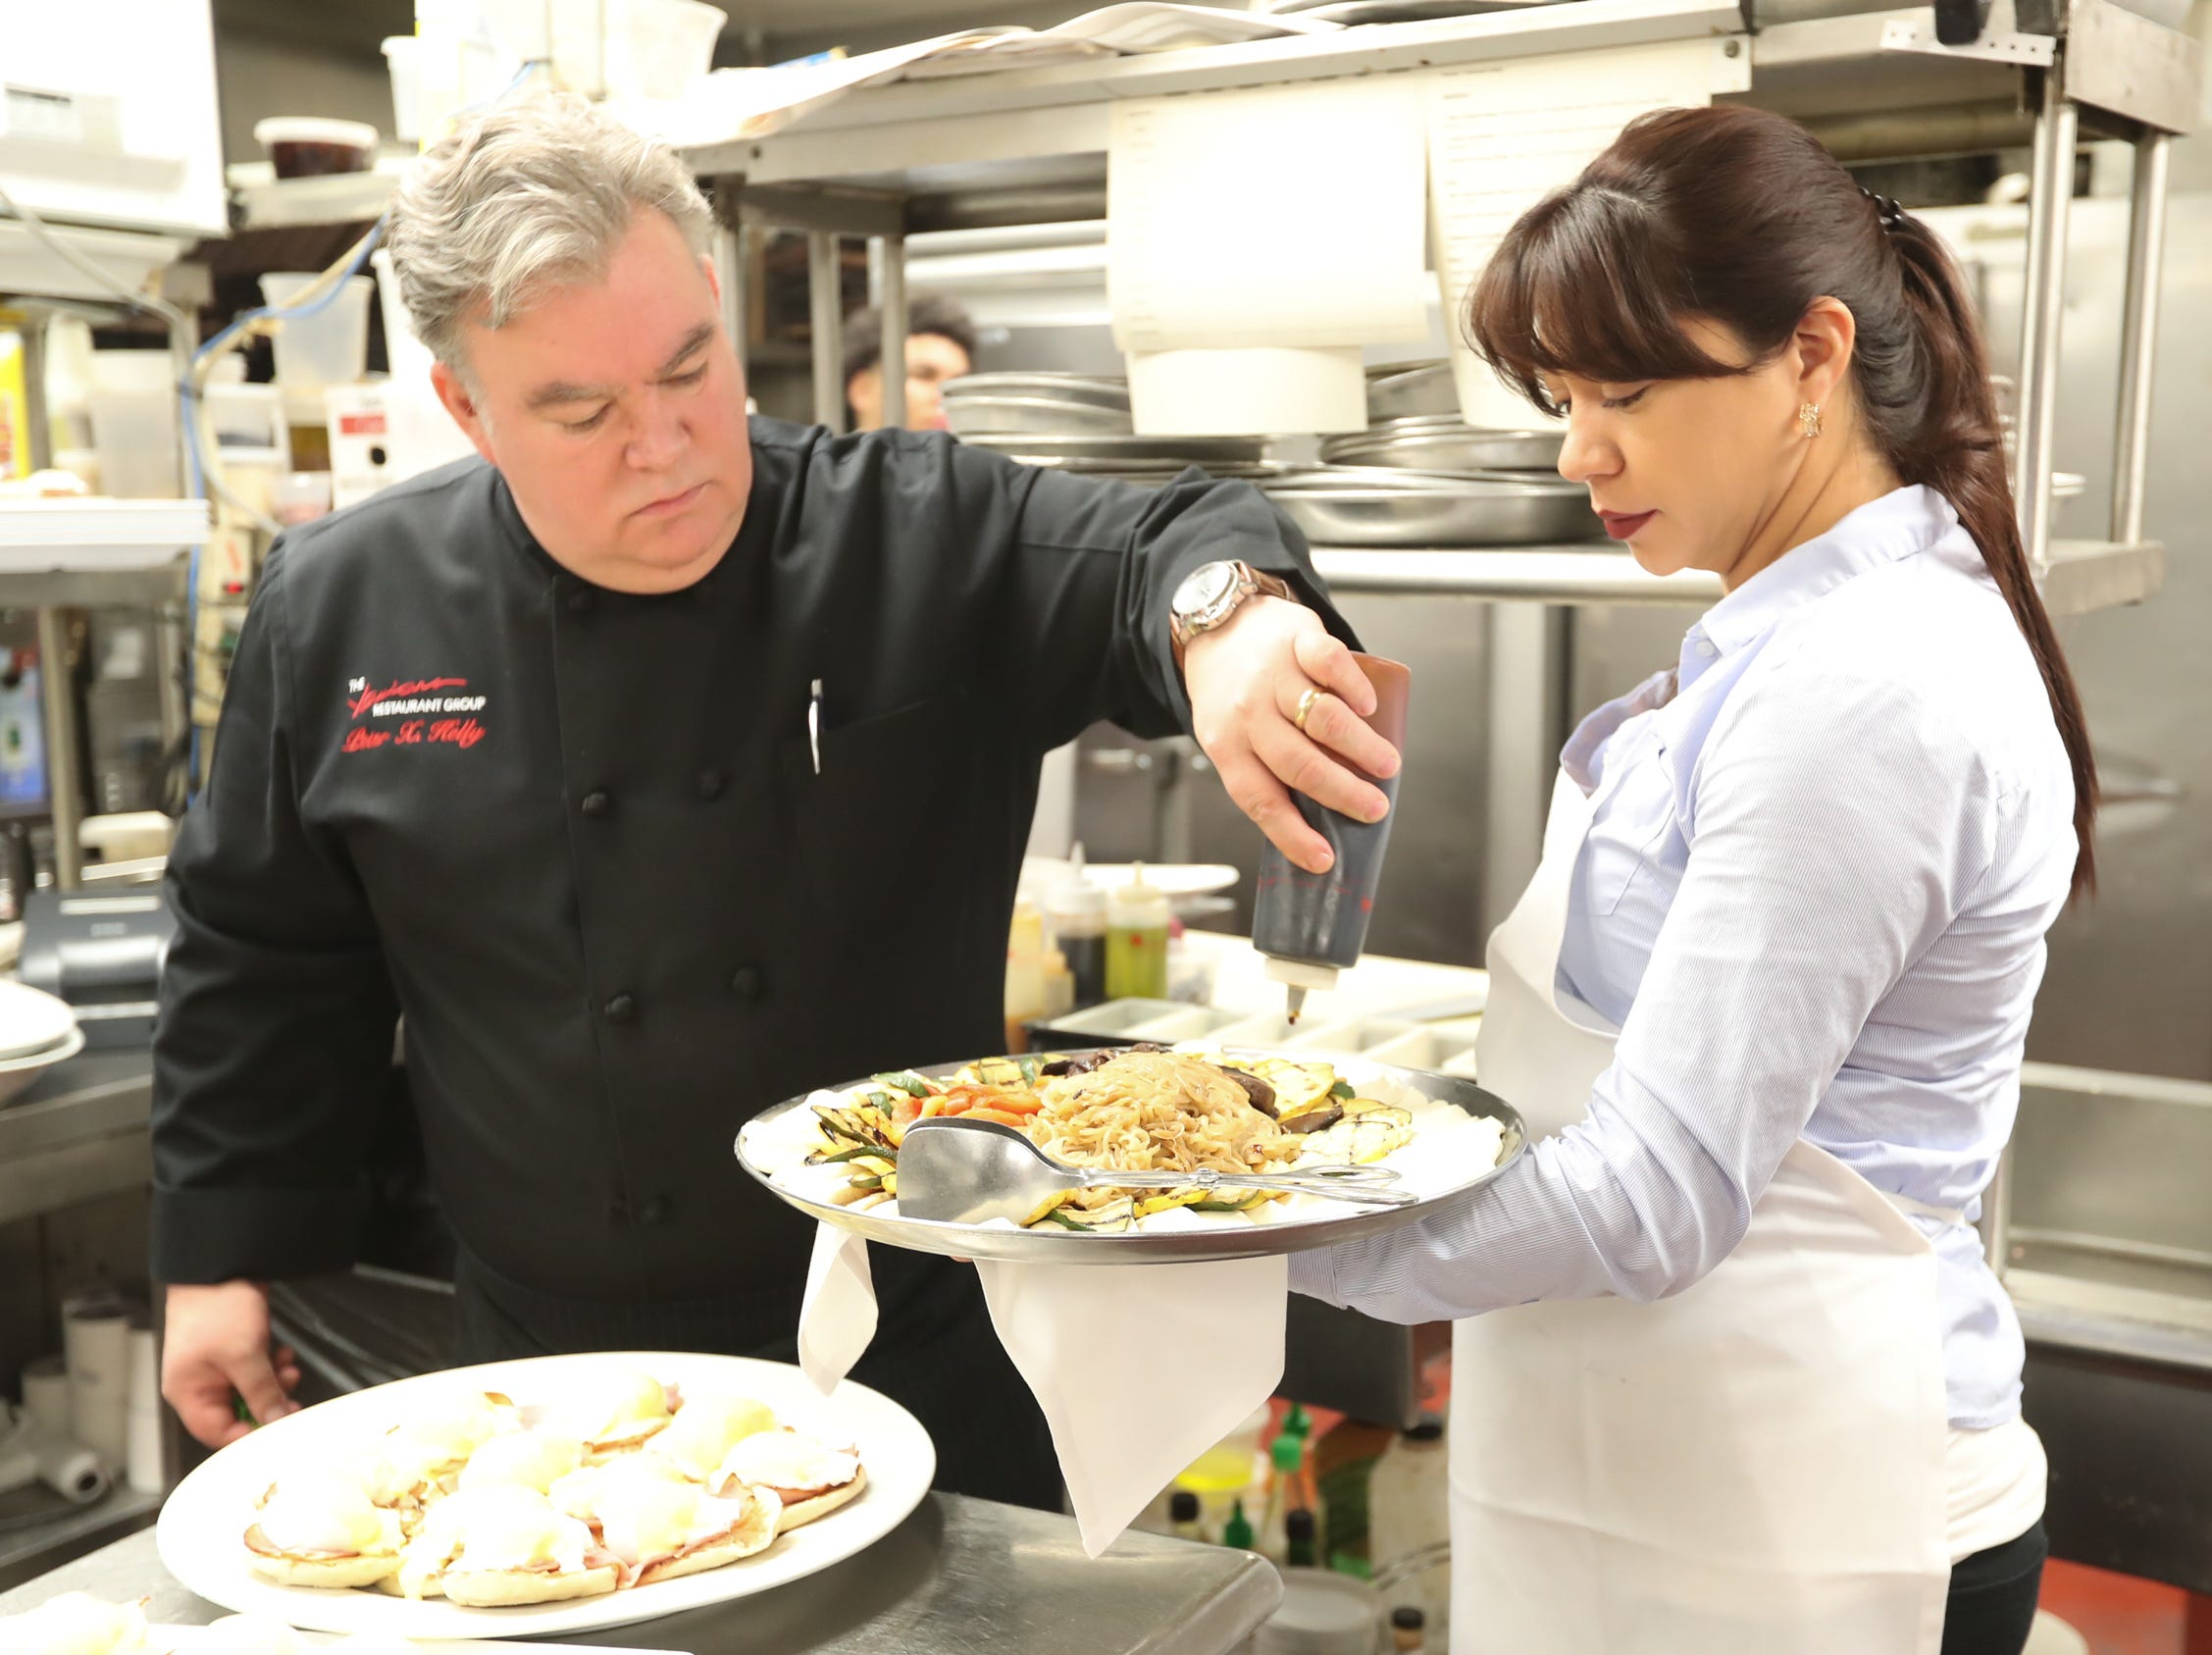 Chef Peter Kelly outs the finishing touches on the Grilled Vegatables & Mozzarella to be served at Sunday brunch at Restaurant X in Congers on Sunday, January 6, 2019.